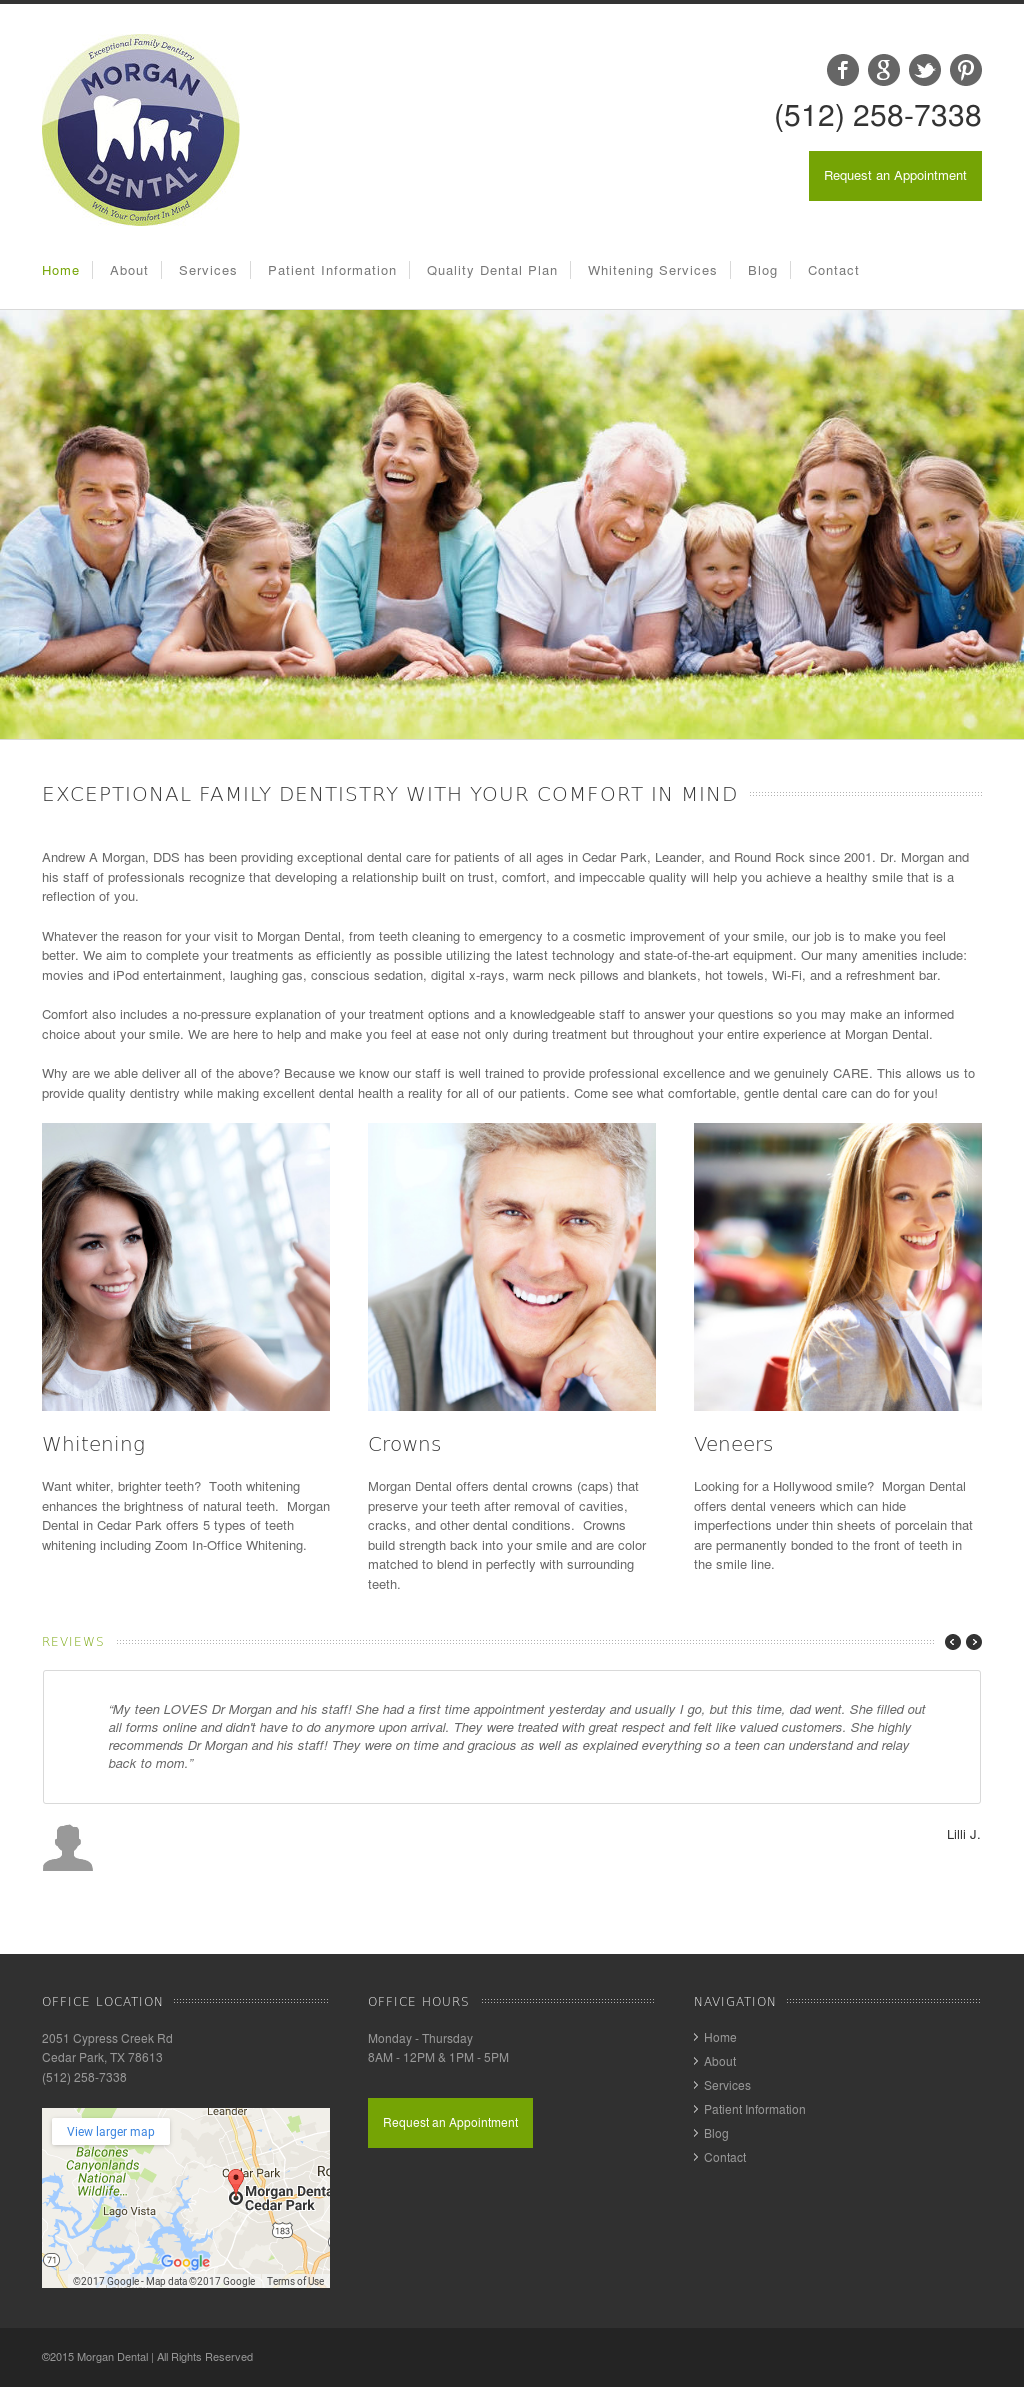 Morgan Dental Competitors, Revenue and Employees - Owler